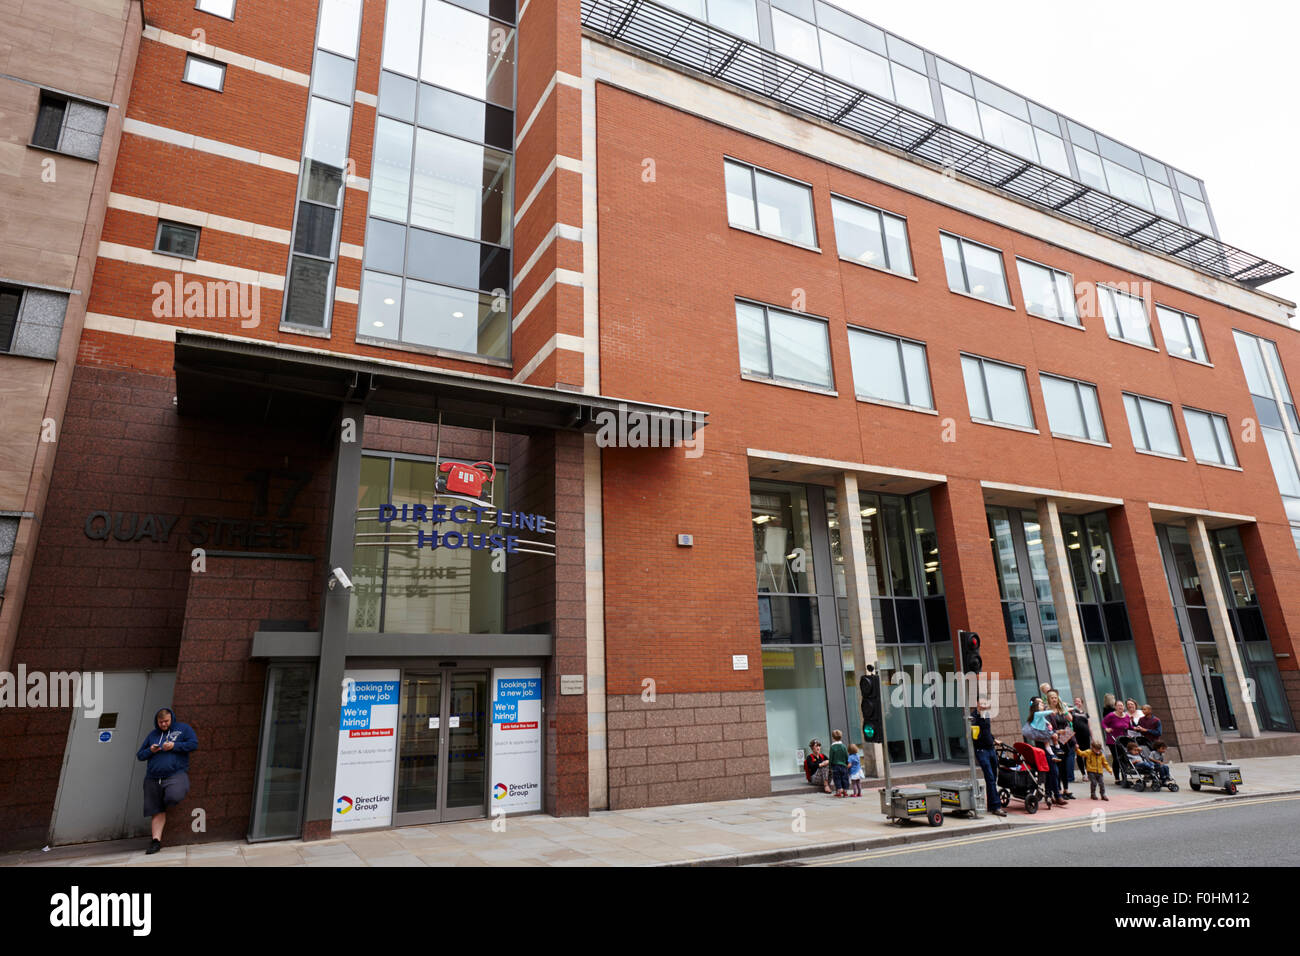 direct line house insurance offices Manchester England UK - Stock Image